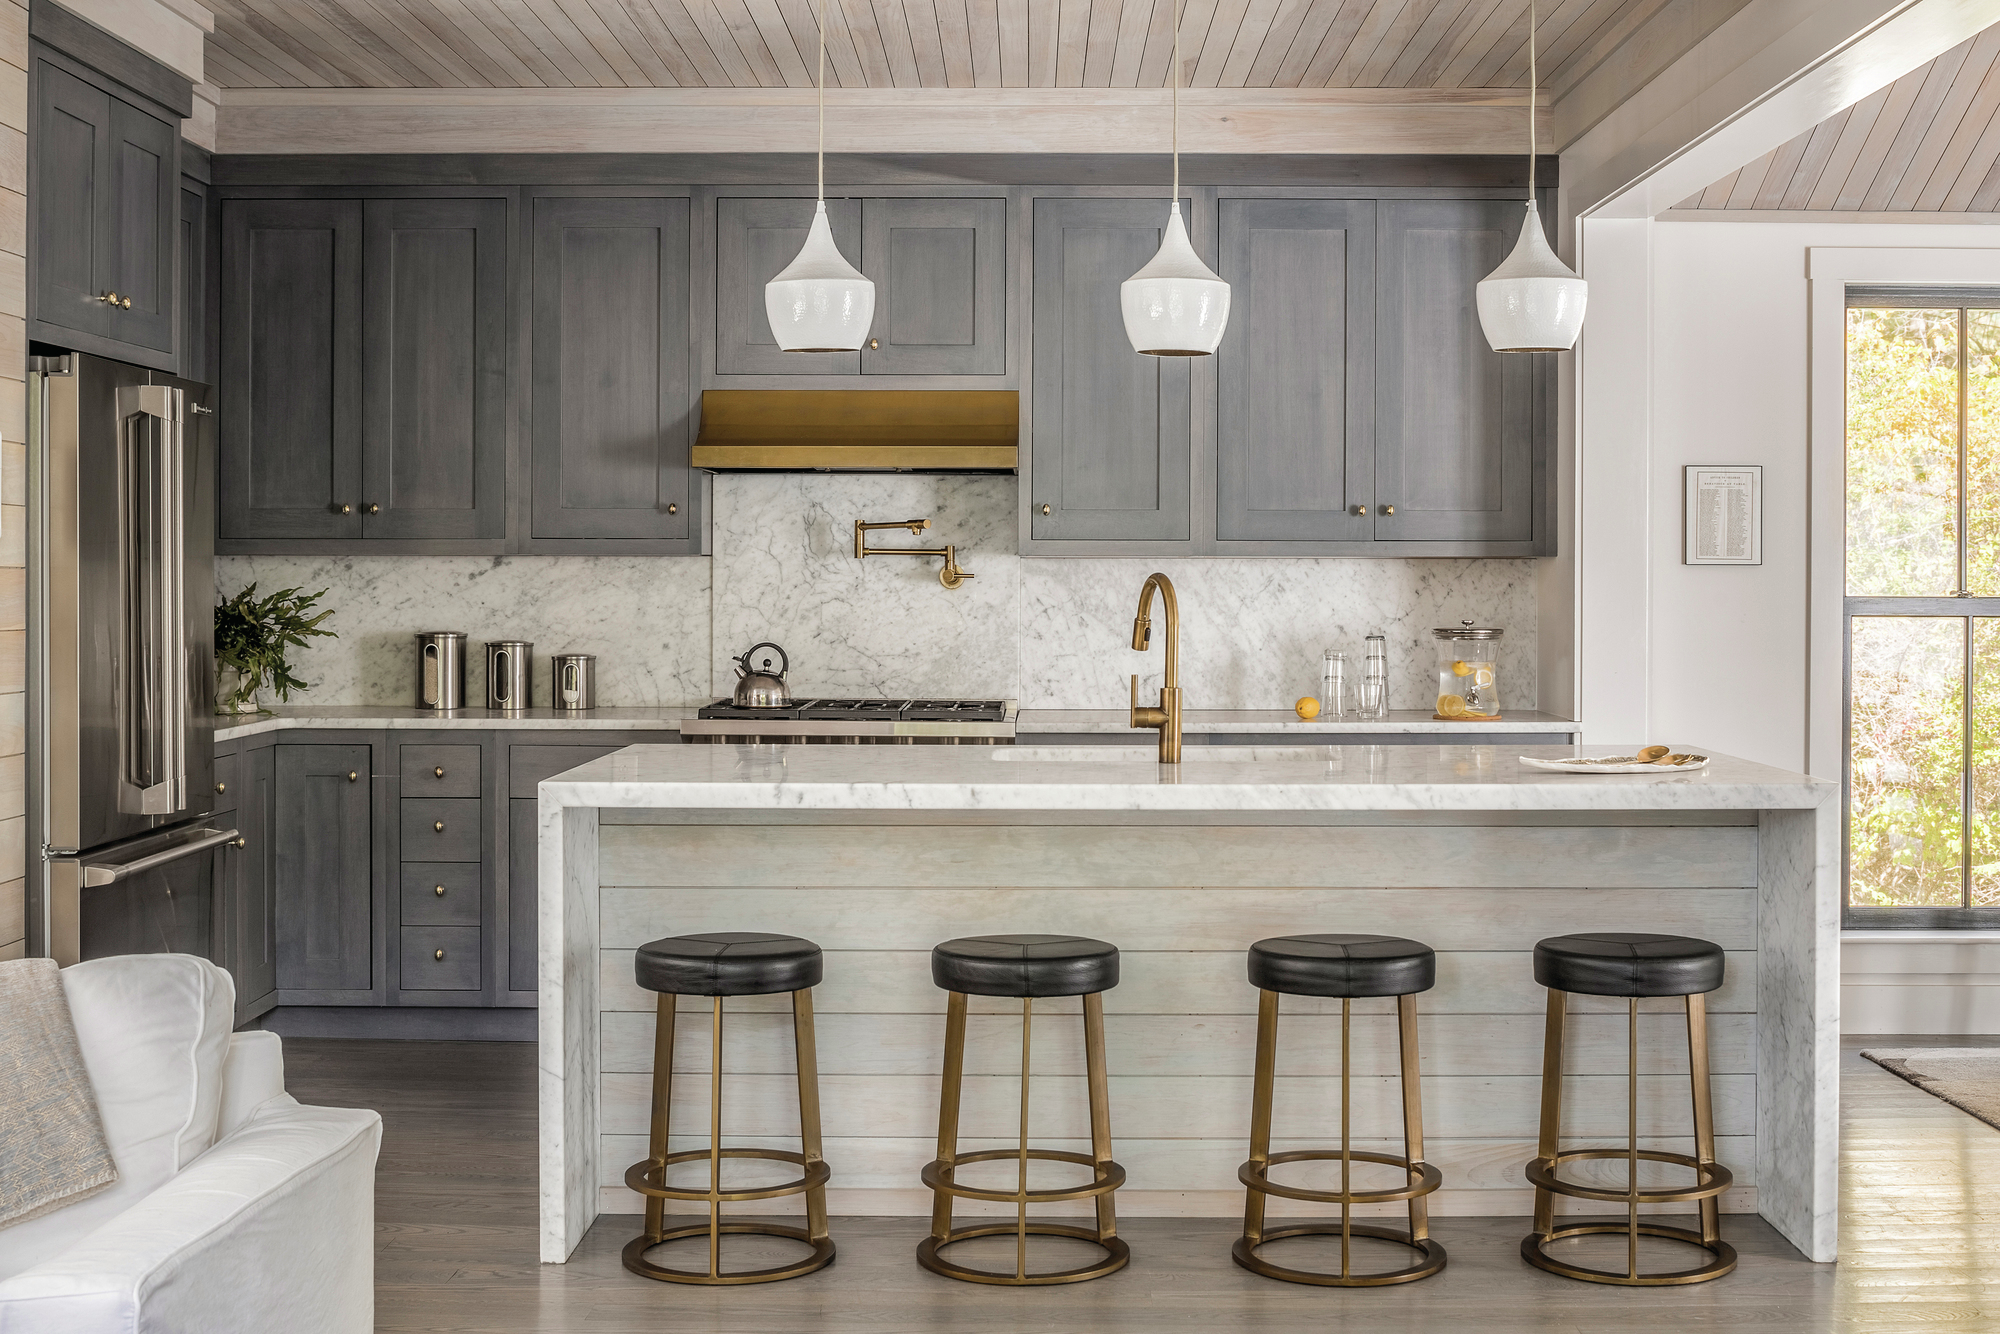 Blue and brass details soften this cozy kitchen builder Cuisine design 2017